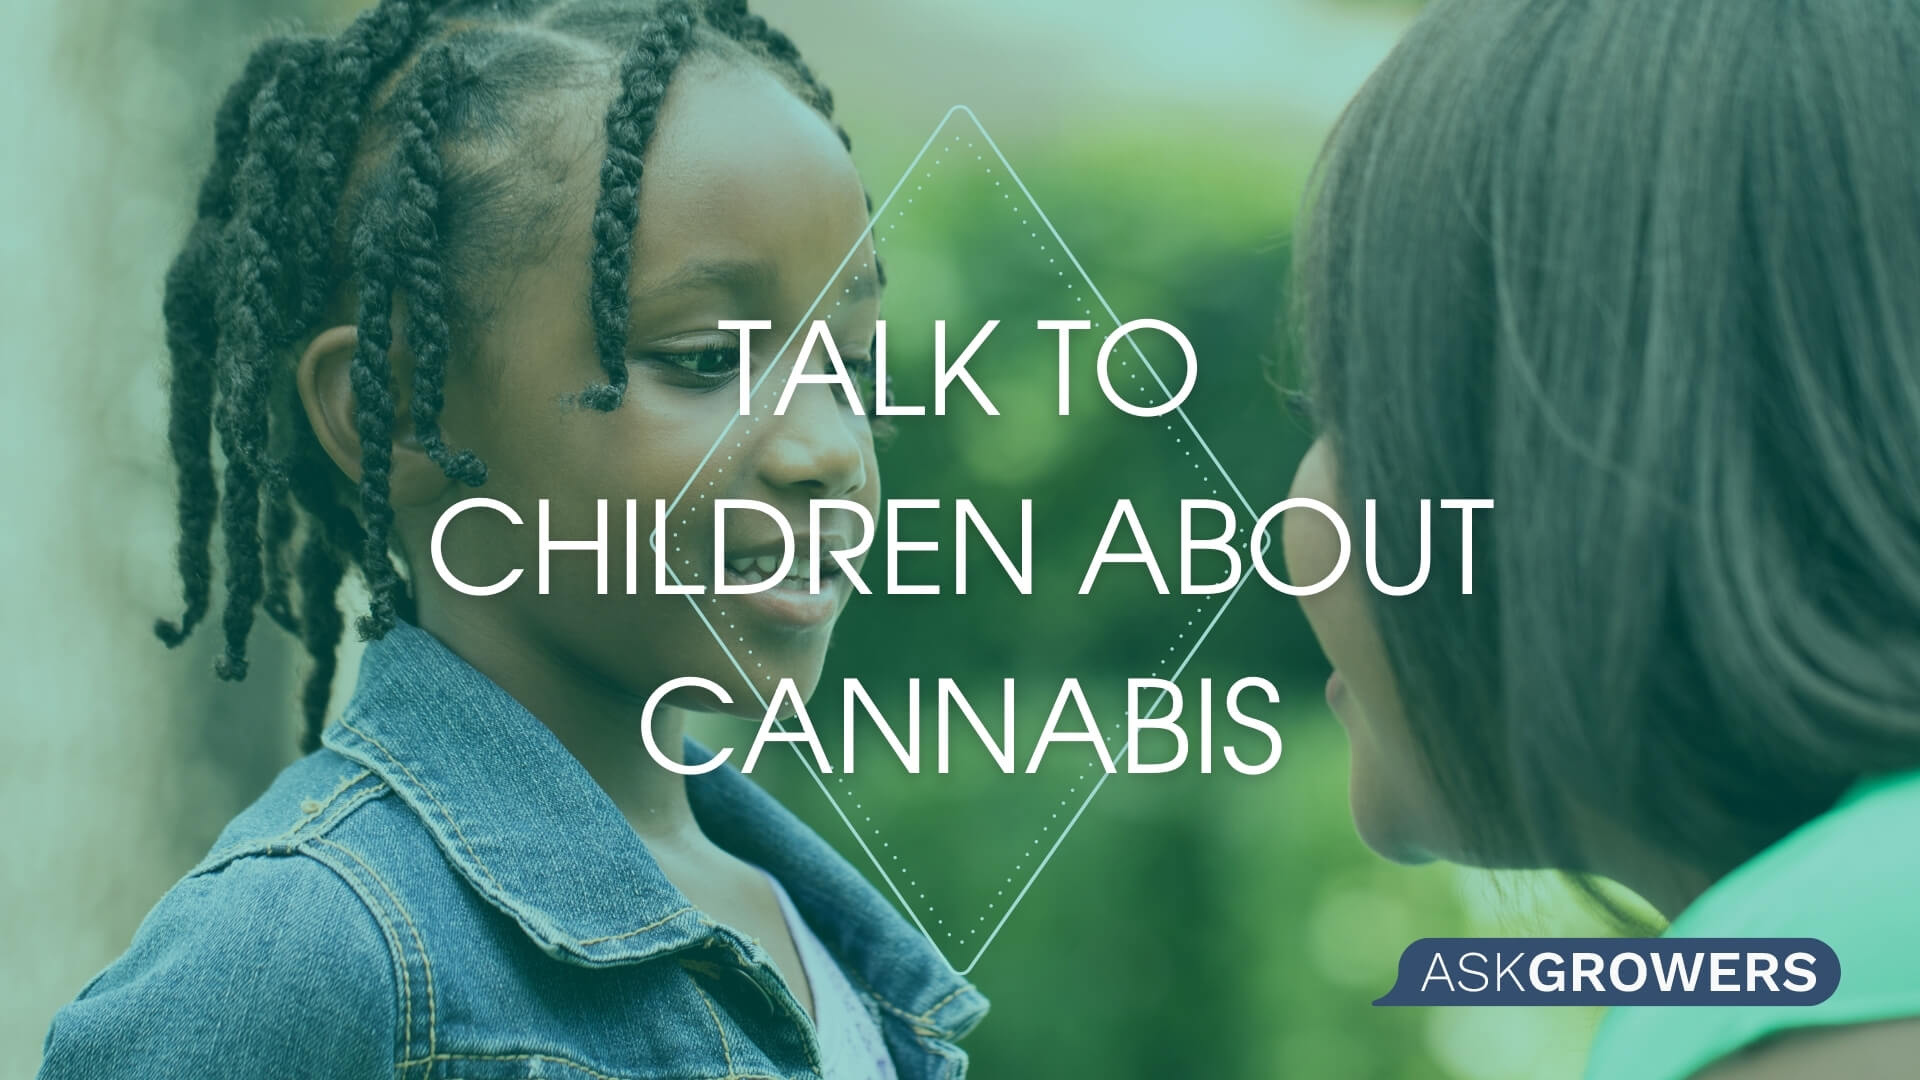 How to Talk to Children of Different Ages About Cannabis, AskGrowers